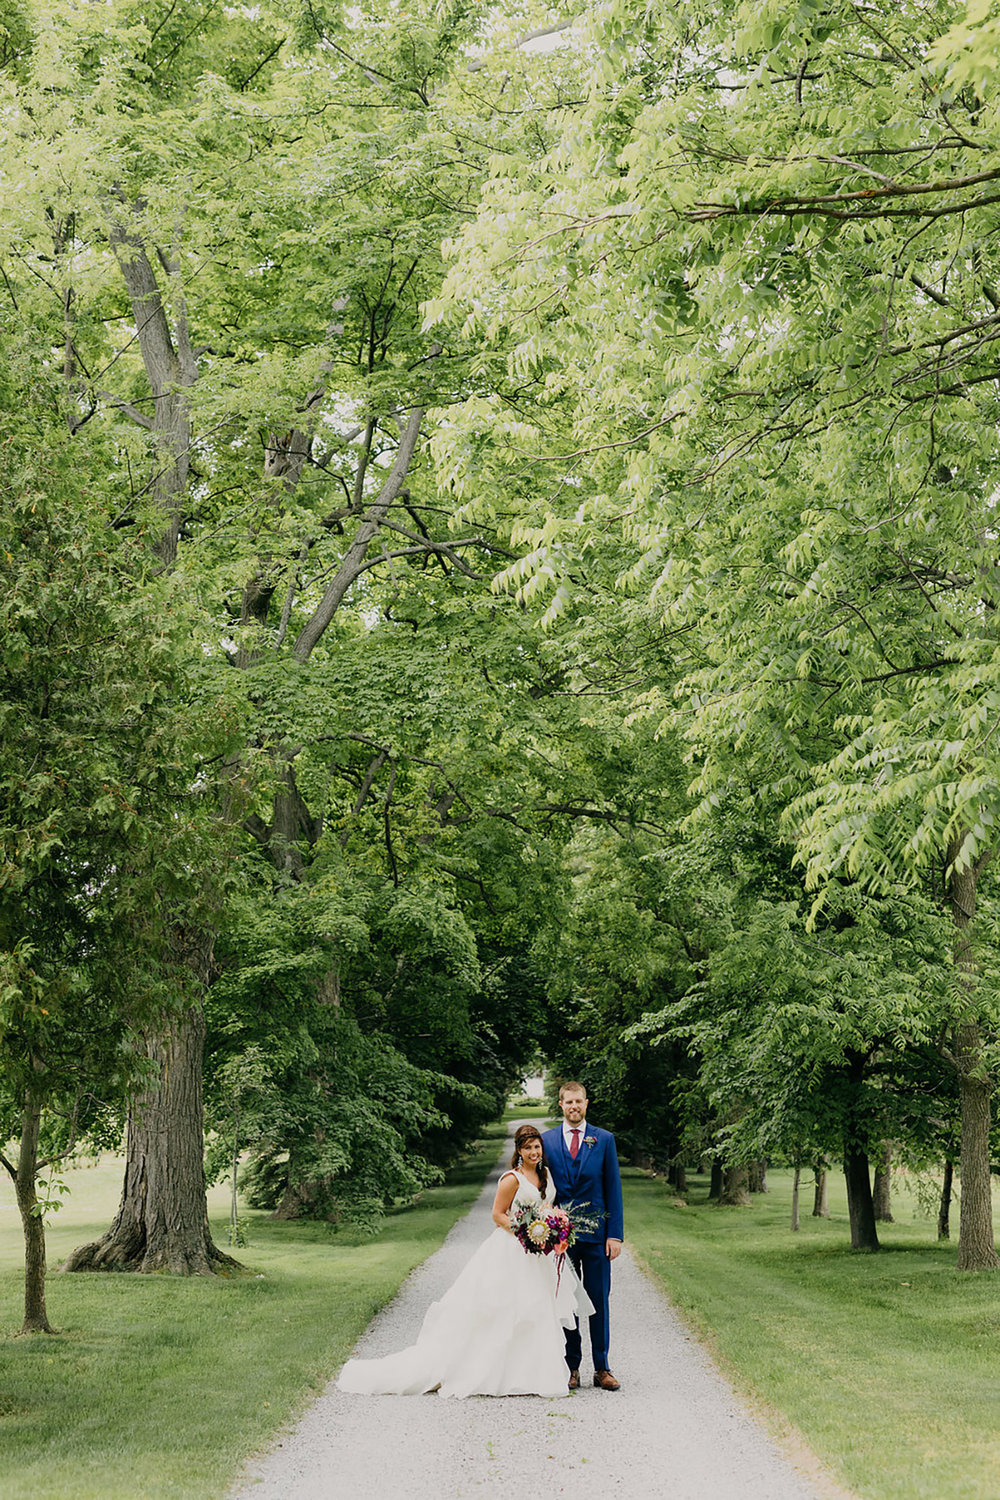 Kurtz-Orchards-Wedding-Niagara-wedding-Vineyard-Bride-Photography-by-Kayla-Rocca-012.JPG